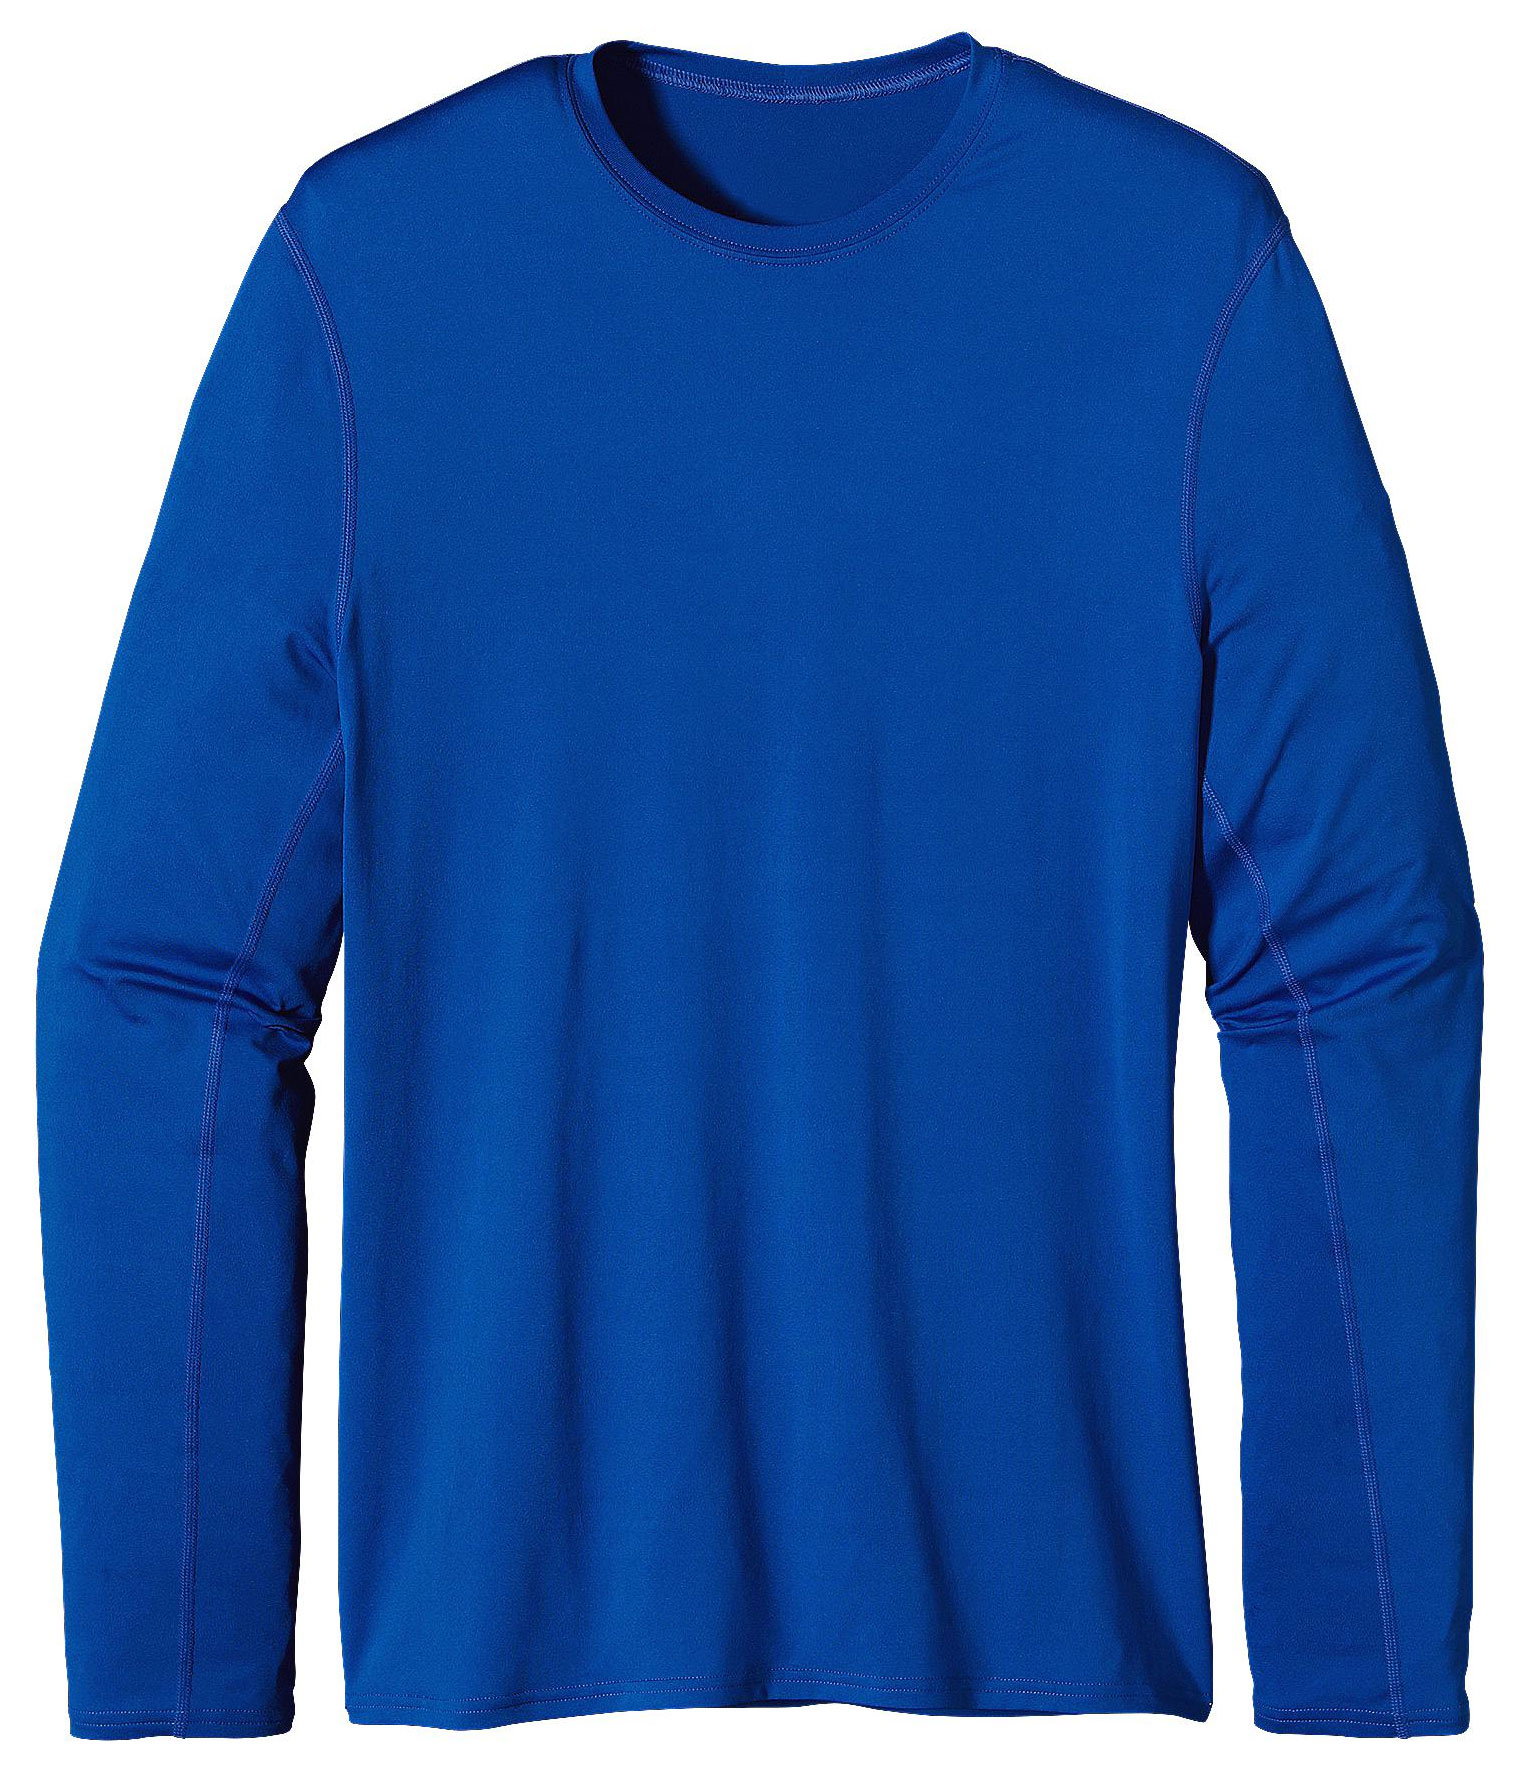 Patagonia Mens Long Sleeve Wicking Caplene� Crew Neck T-shirt